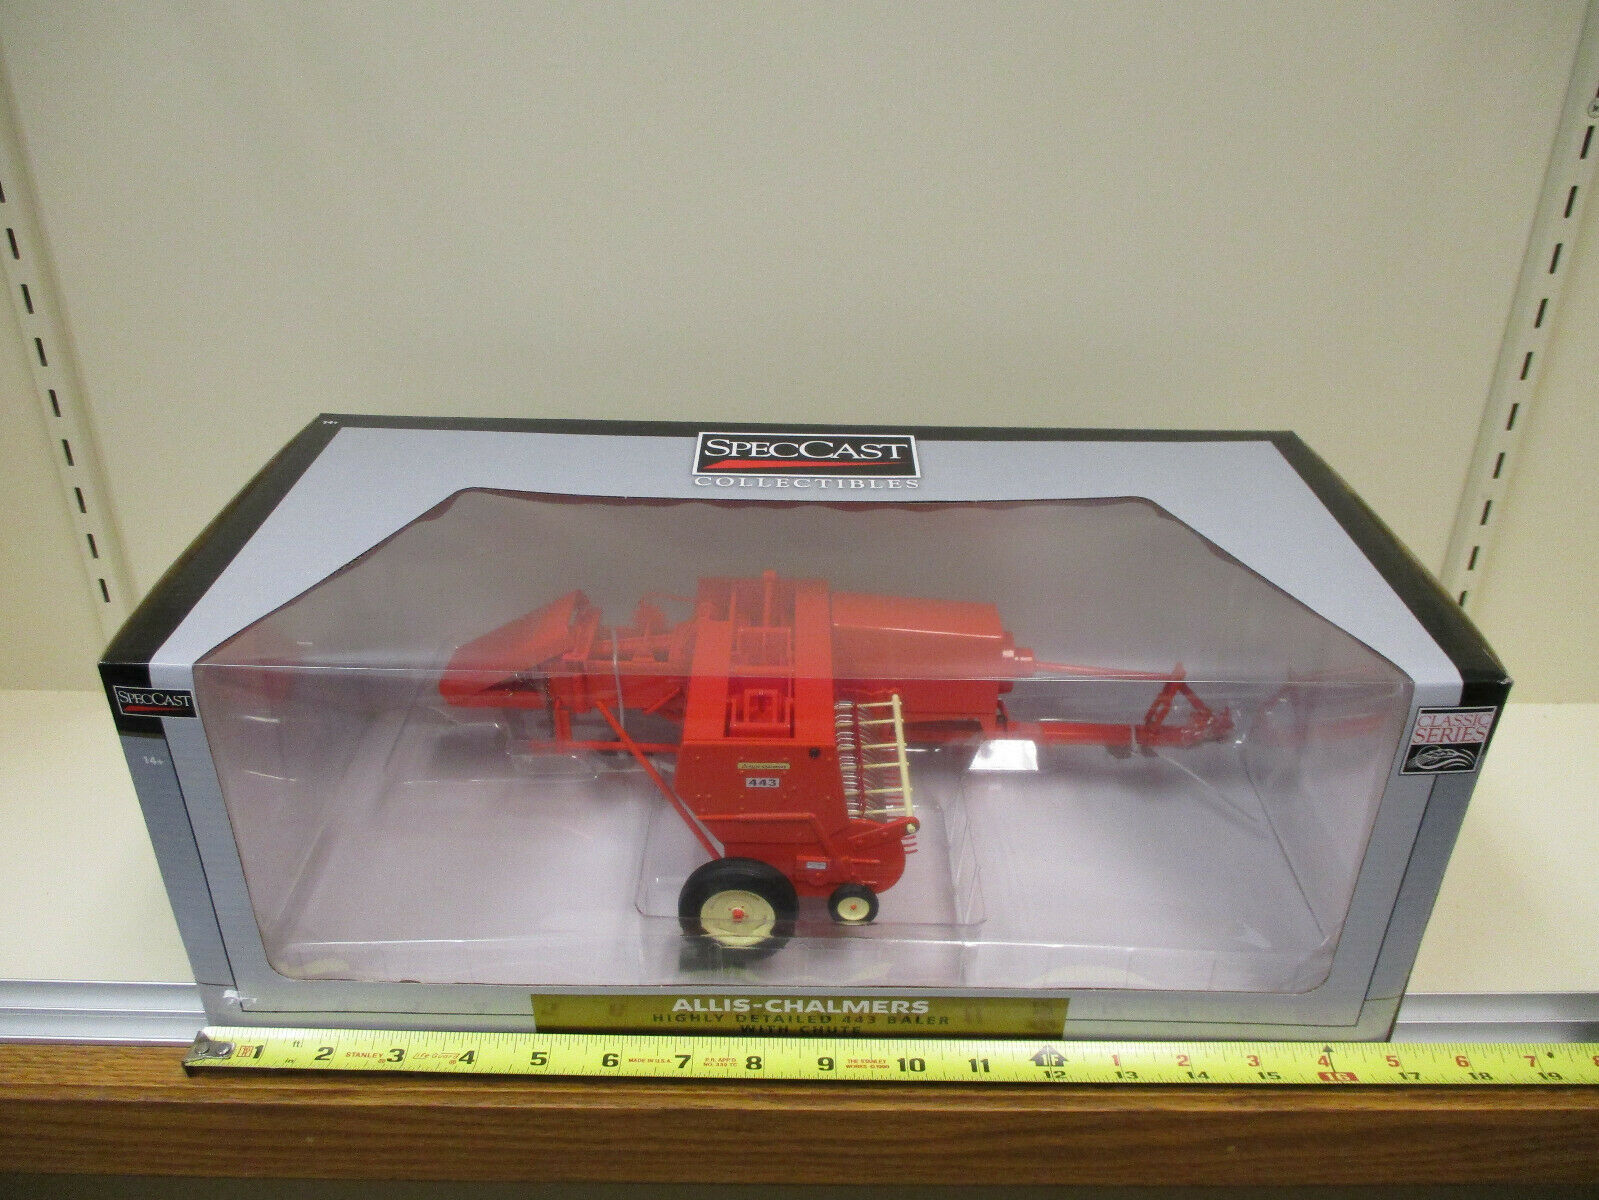 Allis-Chalmers 443 Baler with Chute by SpecCast 1 16th Scale